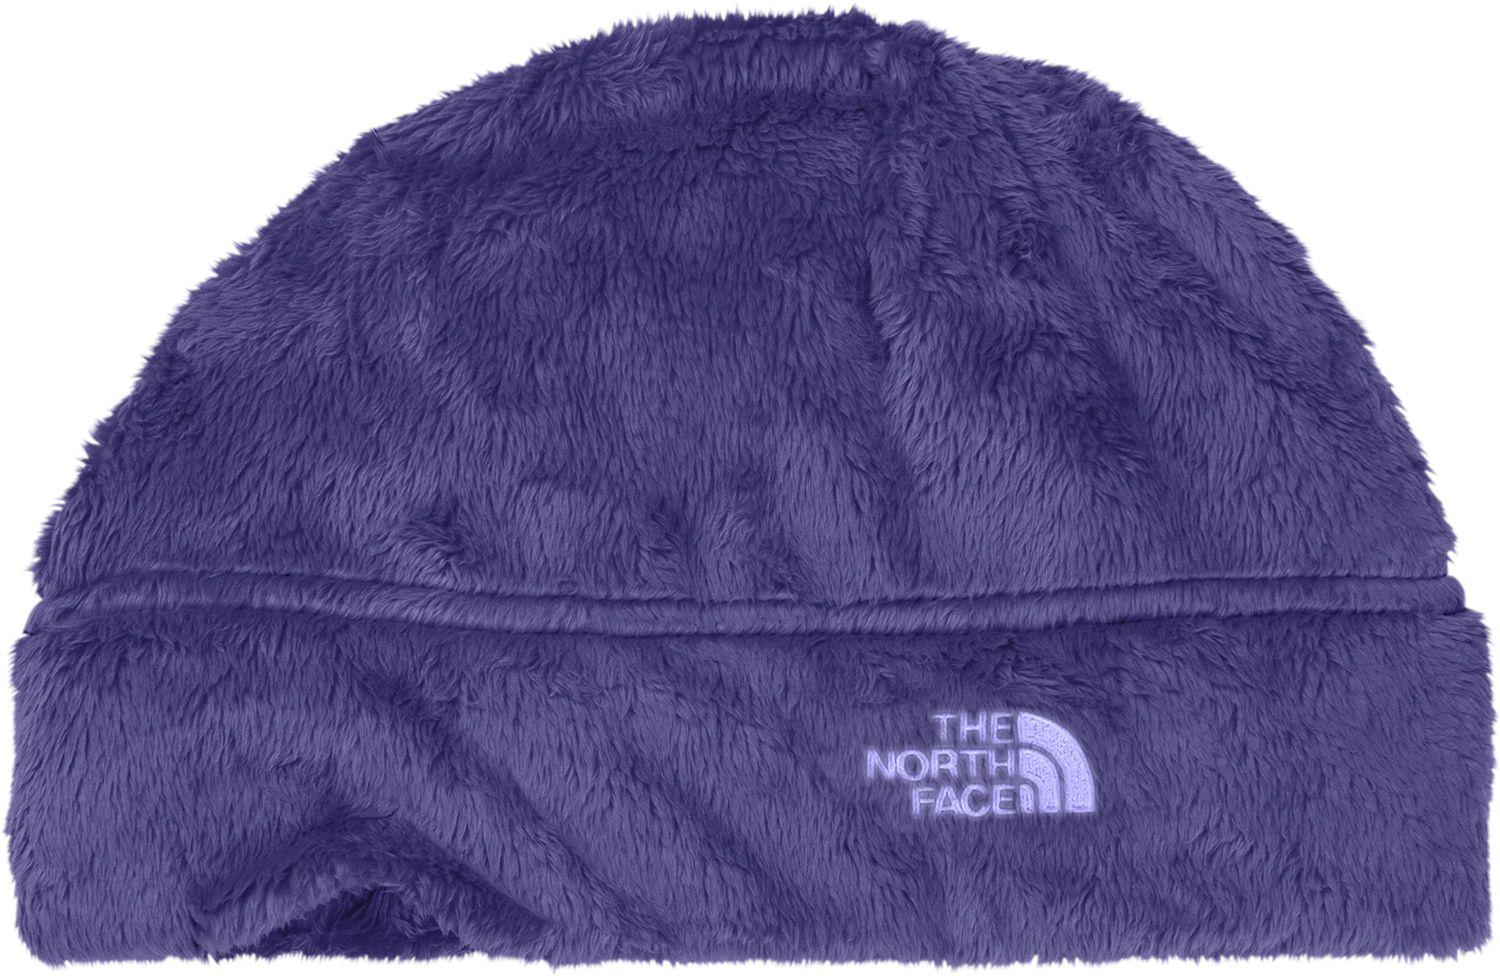 5fcdc6a6e370c Lyst - The North Face Denali Thermal Beanie in Purple